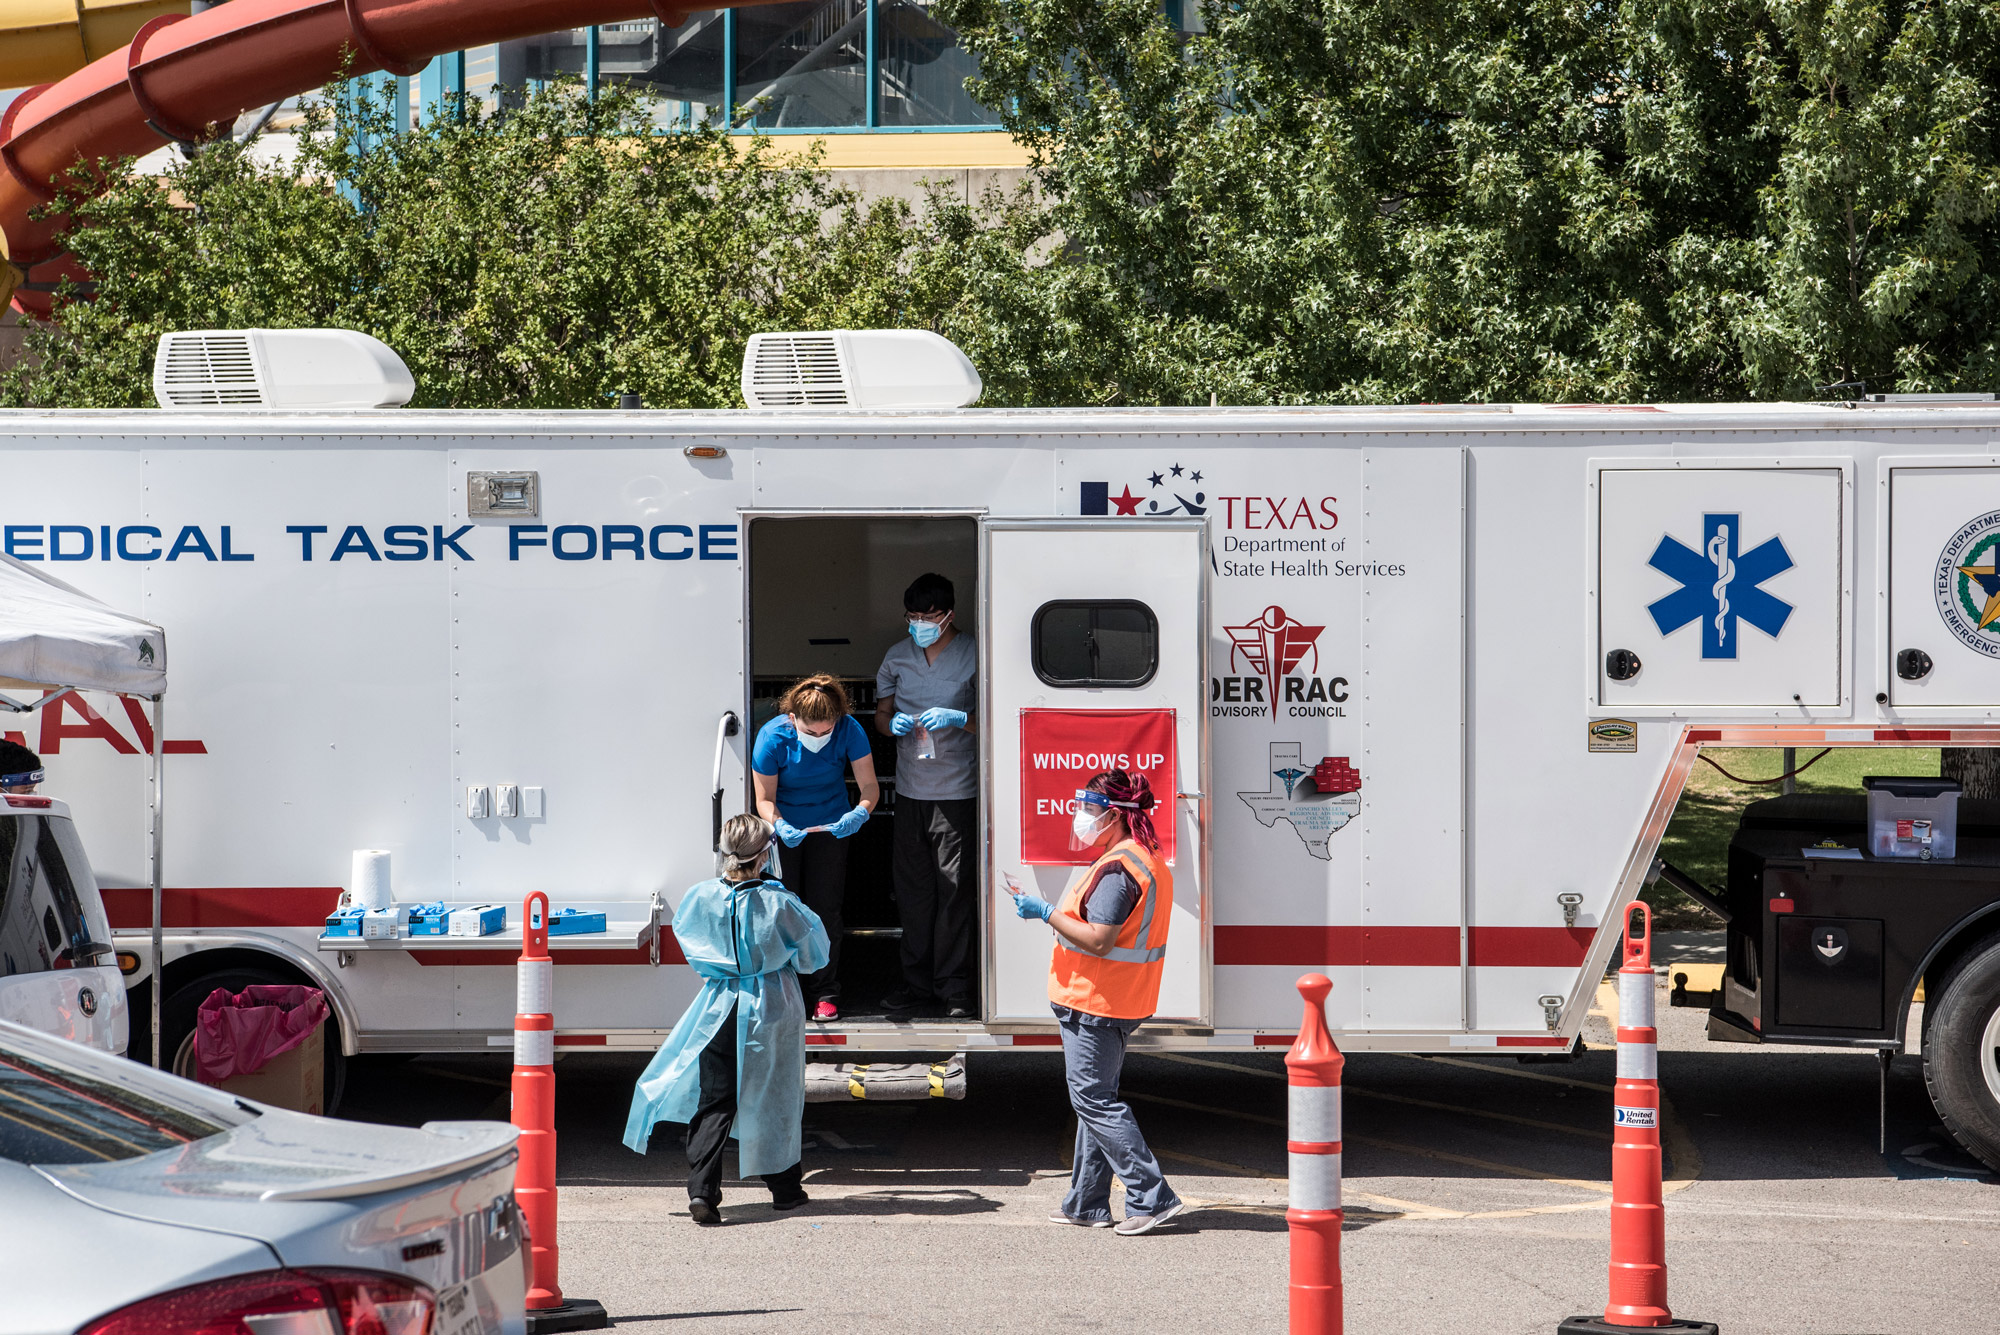 Nurses conduct coronavirus testing at a drive-thru site at SISD Student Activities Complex on July 21 in El Paso, Texas.